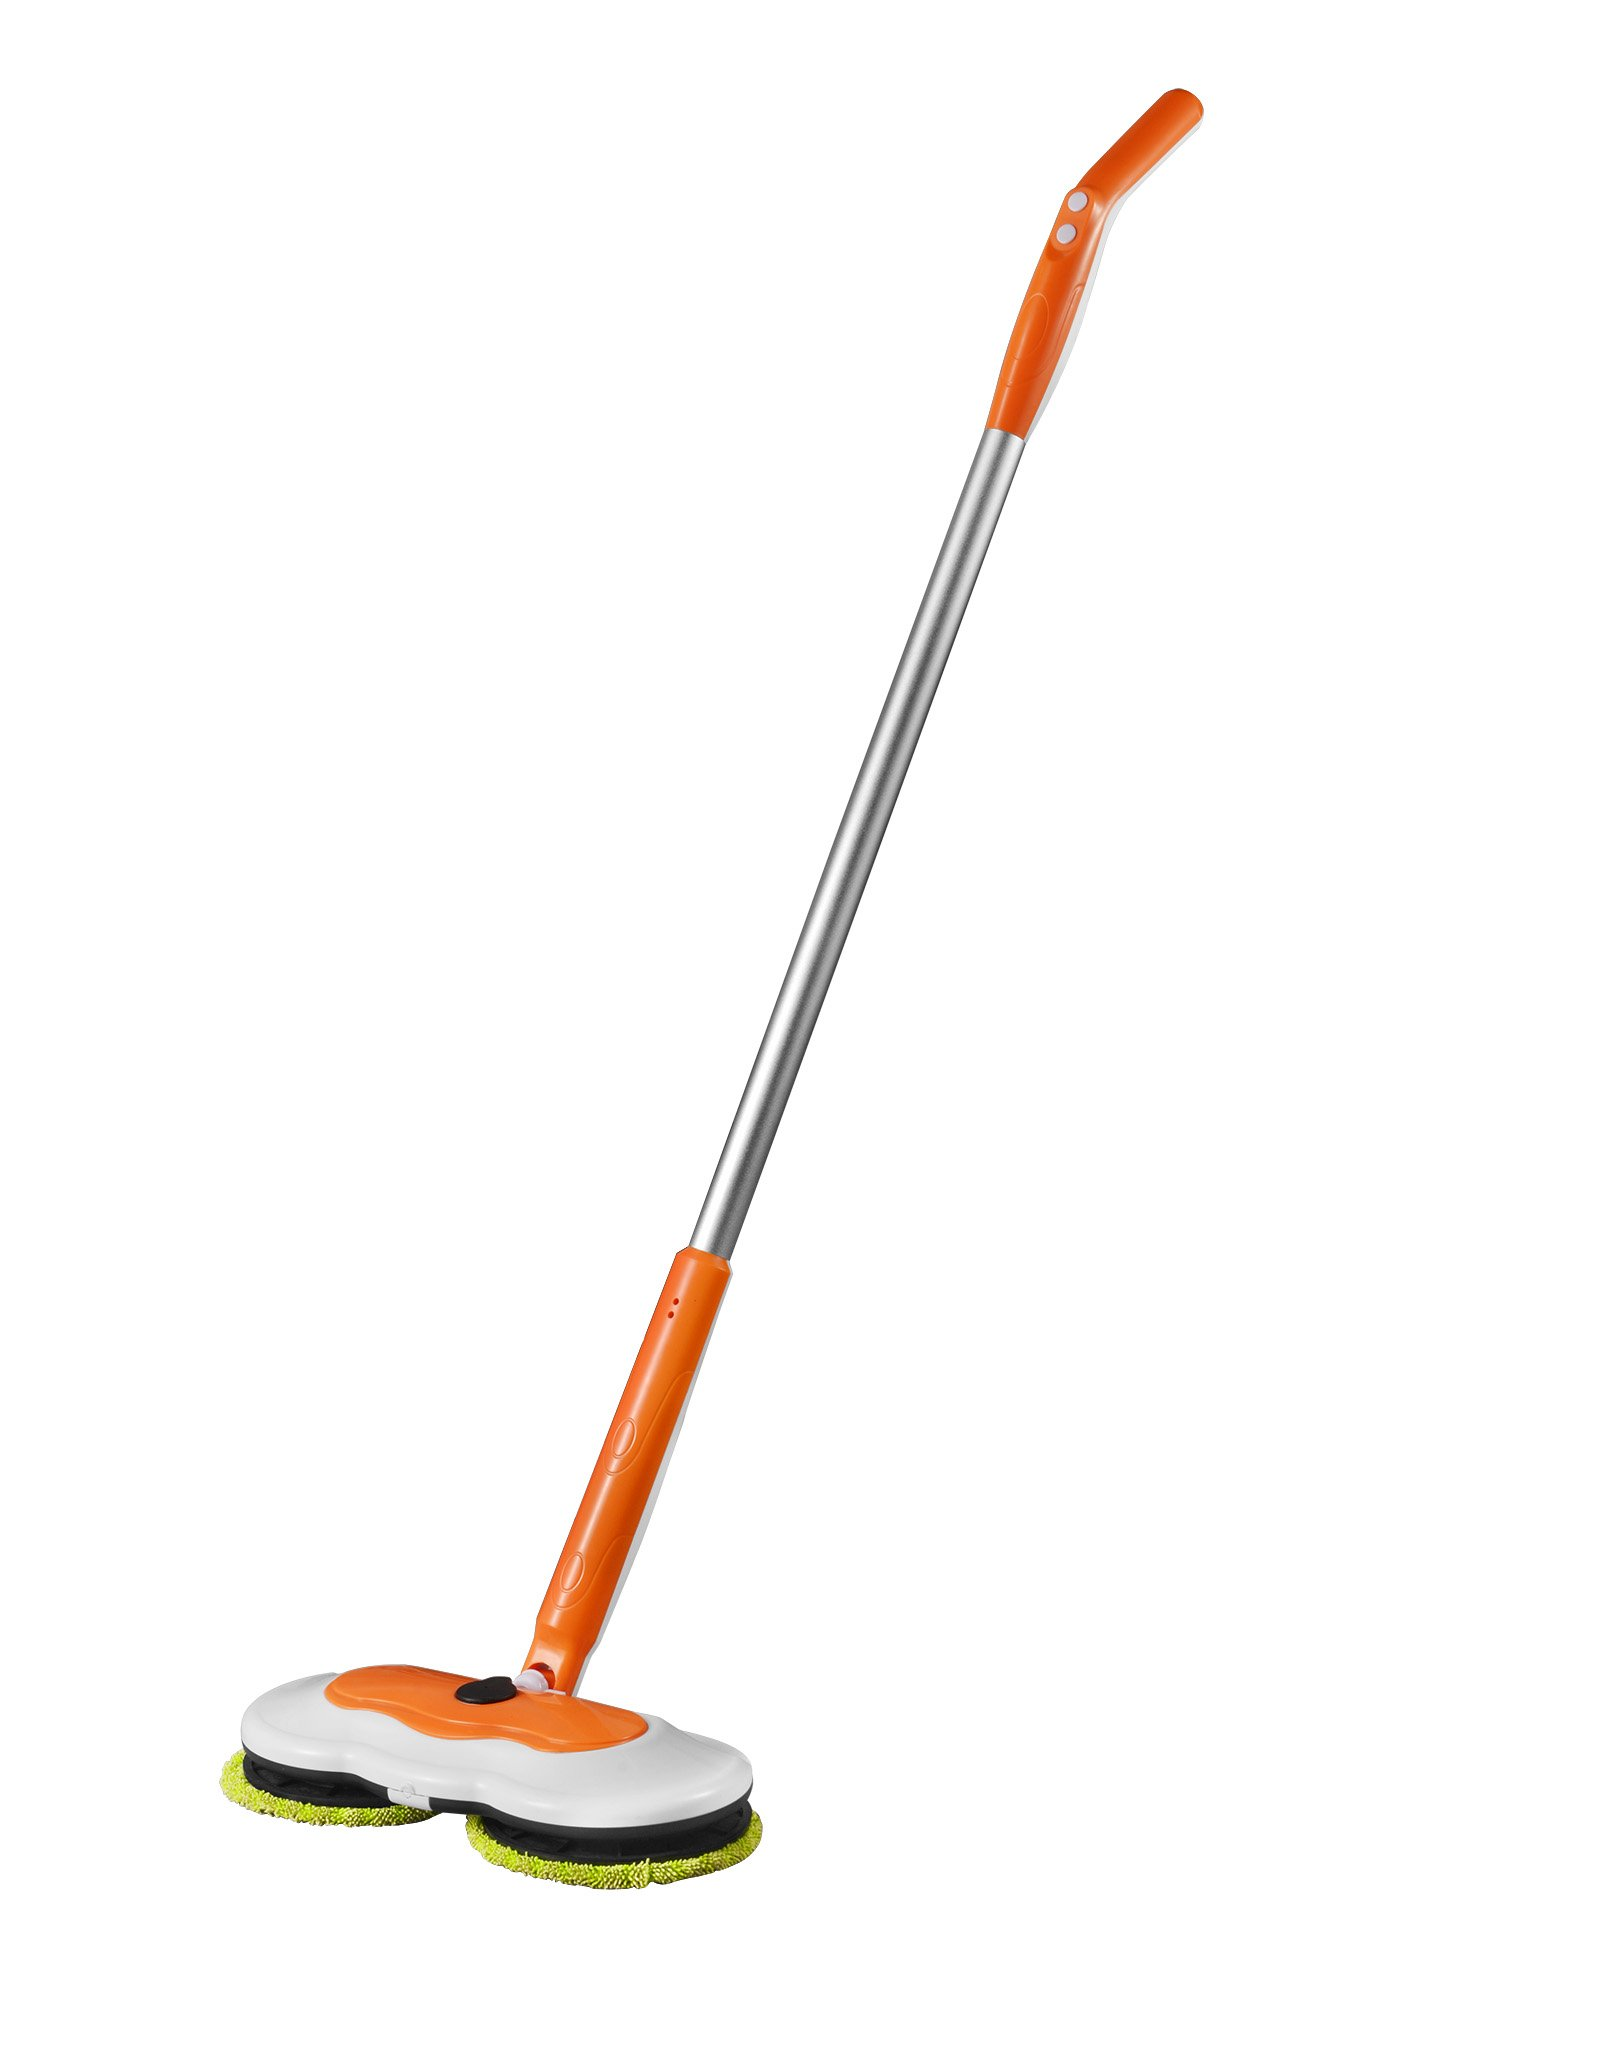 Armati Hardwood Floor Mop - 360°Cordless Tub and Tile Scrubber with Batteries - Cleaning System for Polishing, Mopping, Sweeping - Orange